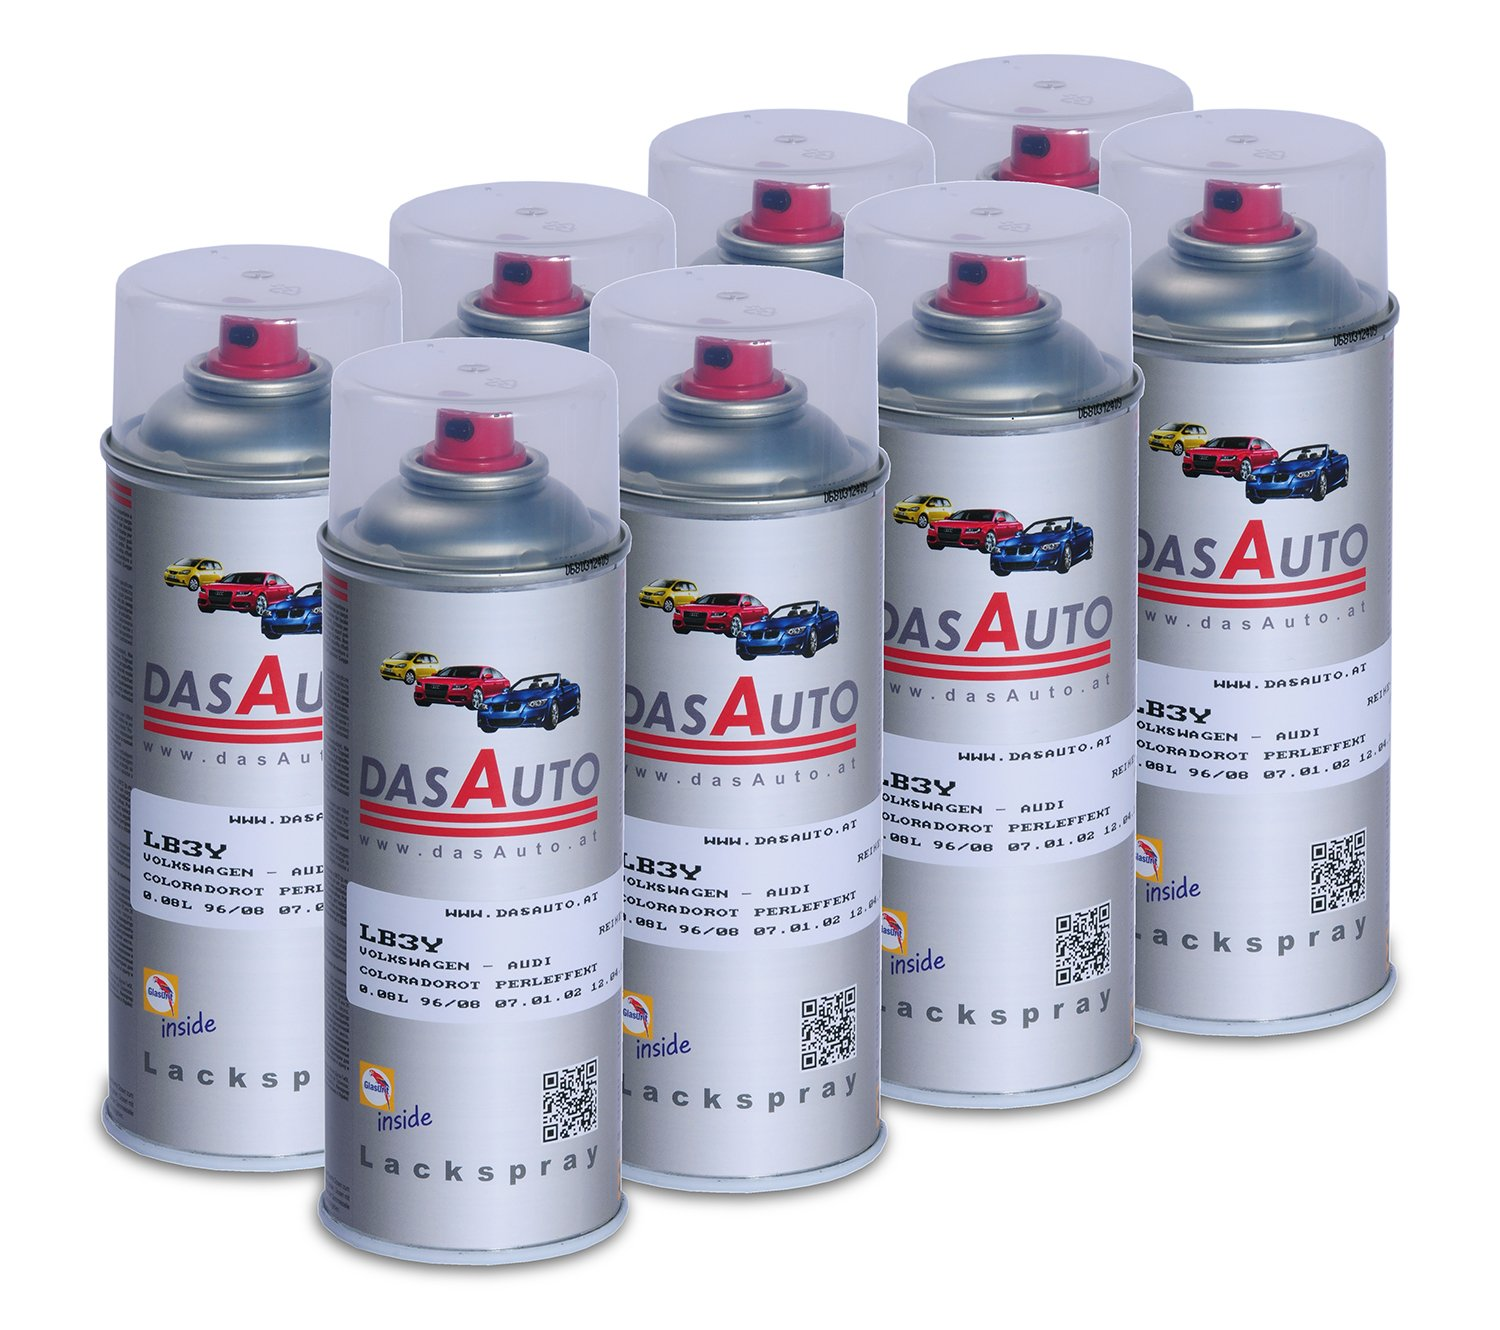 8 x dasauto Vernis Spray glasurit série 55 Inside 400 ml